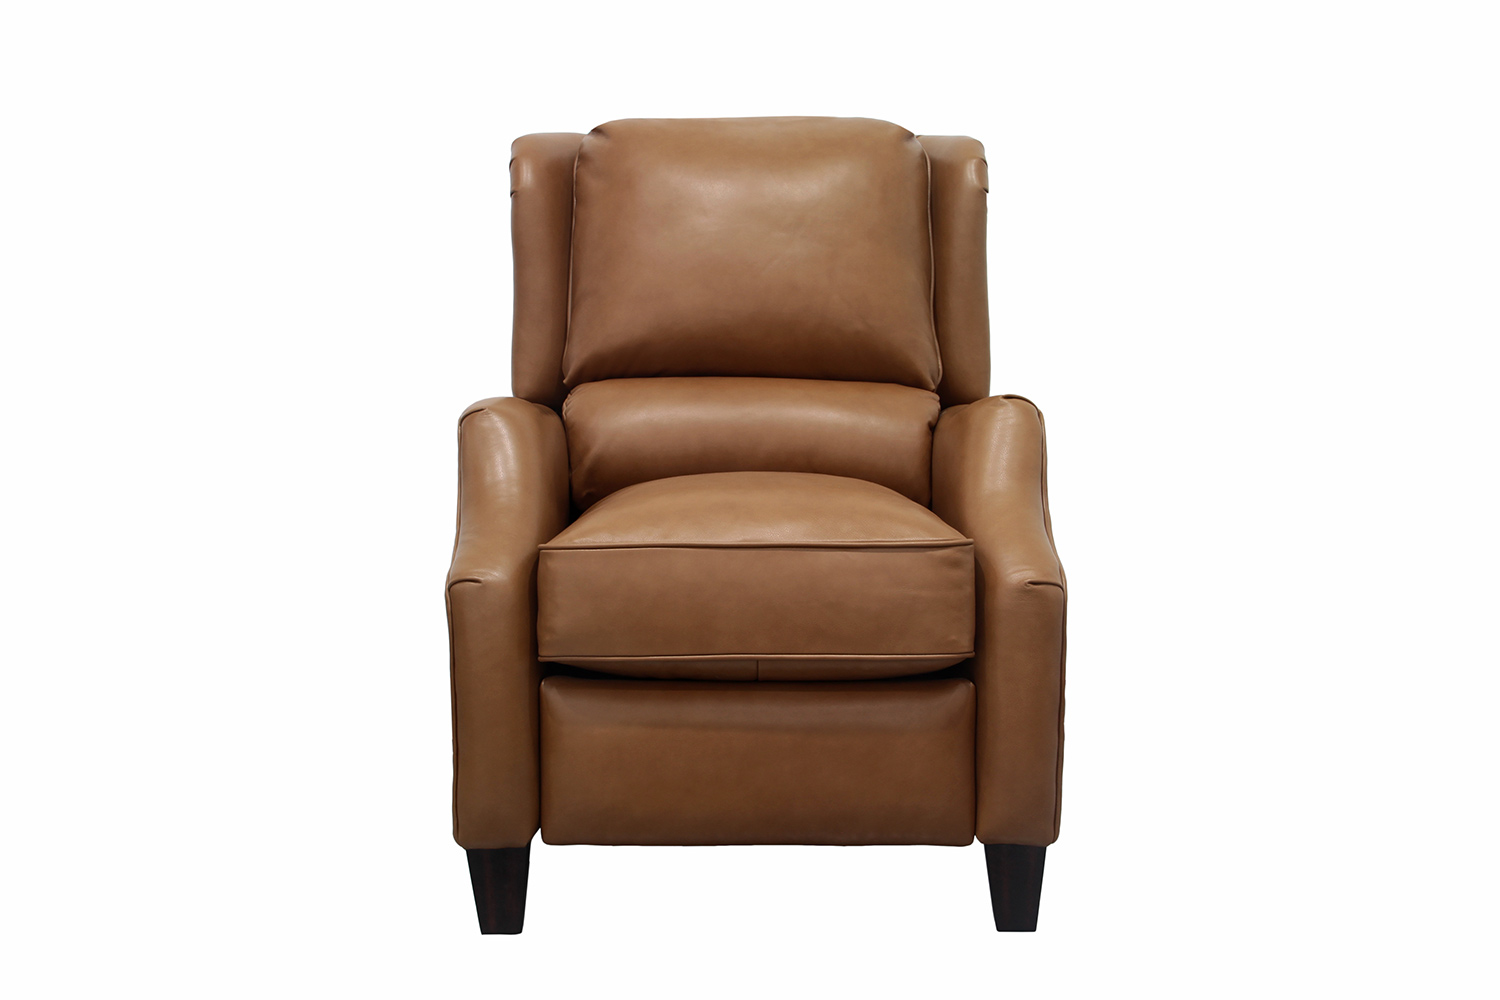 all leather recliner chairs wheelchair airport barcalounger berkeley chair shoreham ponytail